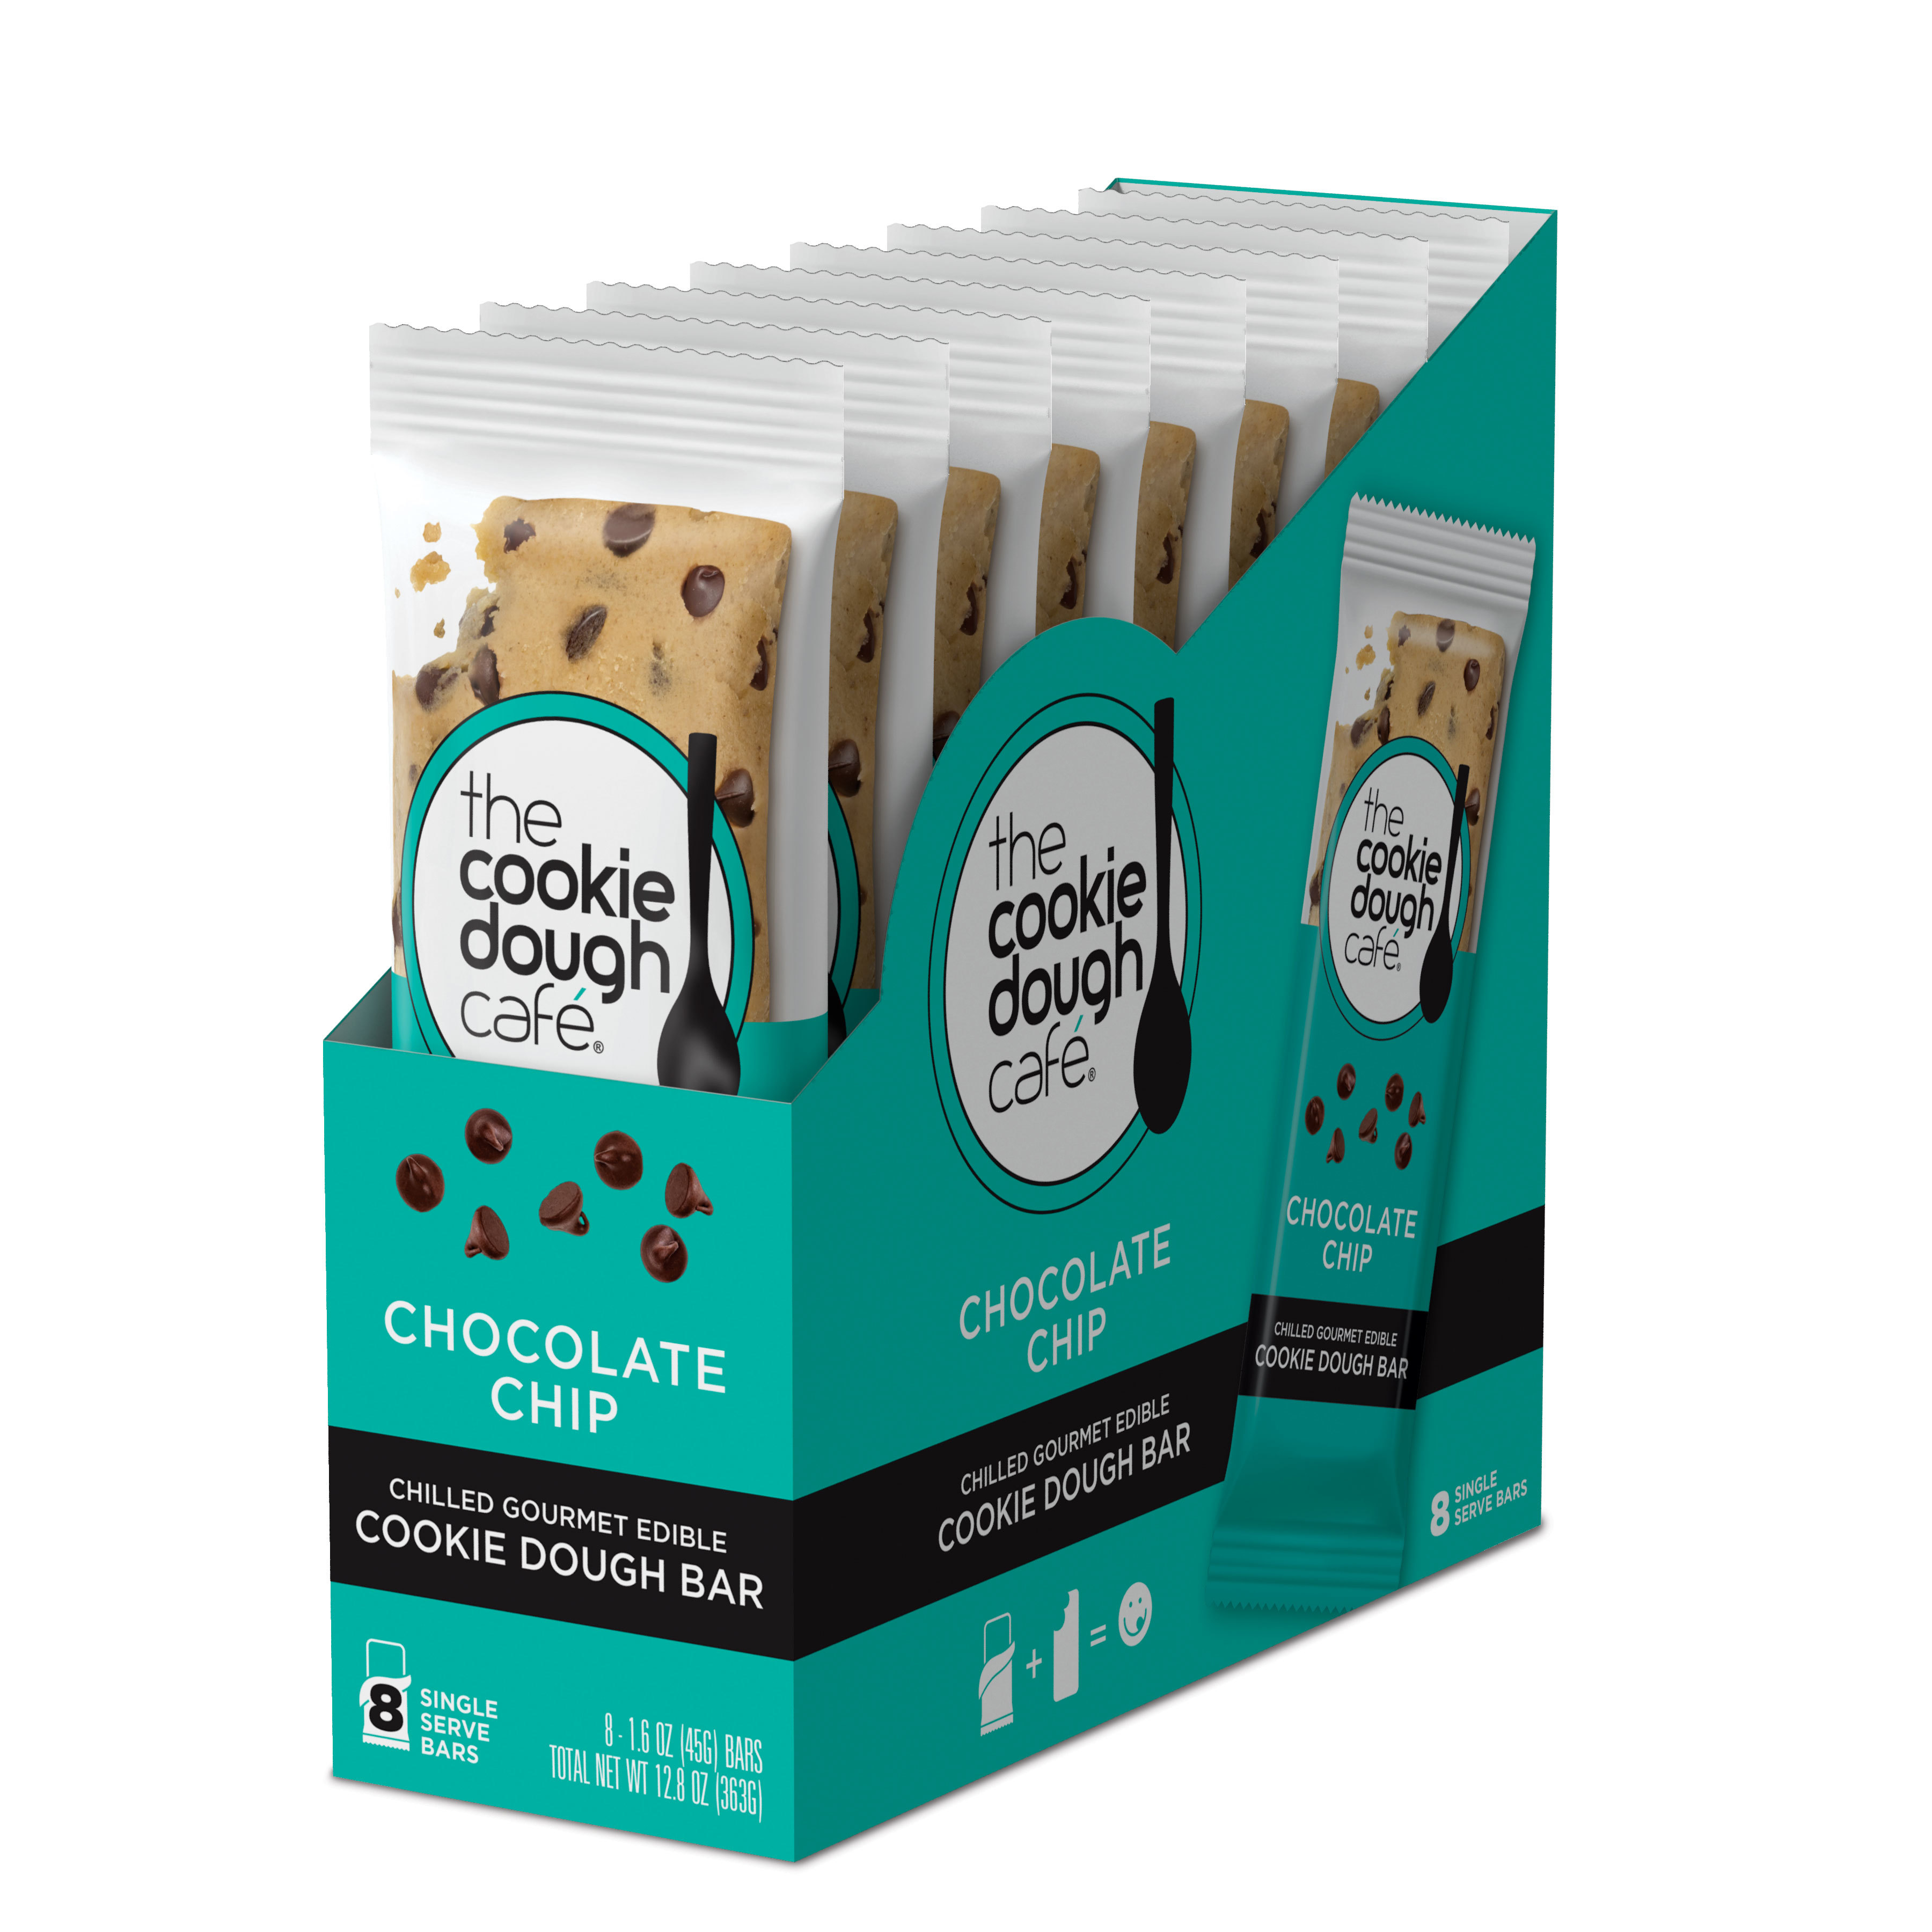 Chocolate Chip Cookie Dough Bars 16 Pack (1.6 oz each)